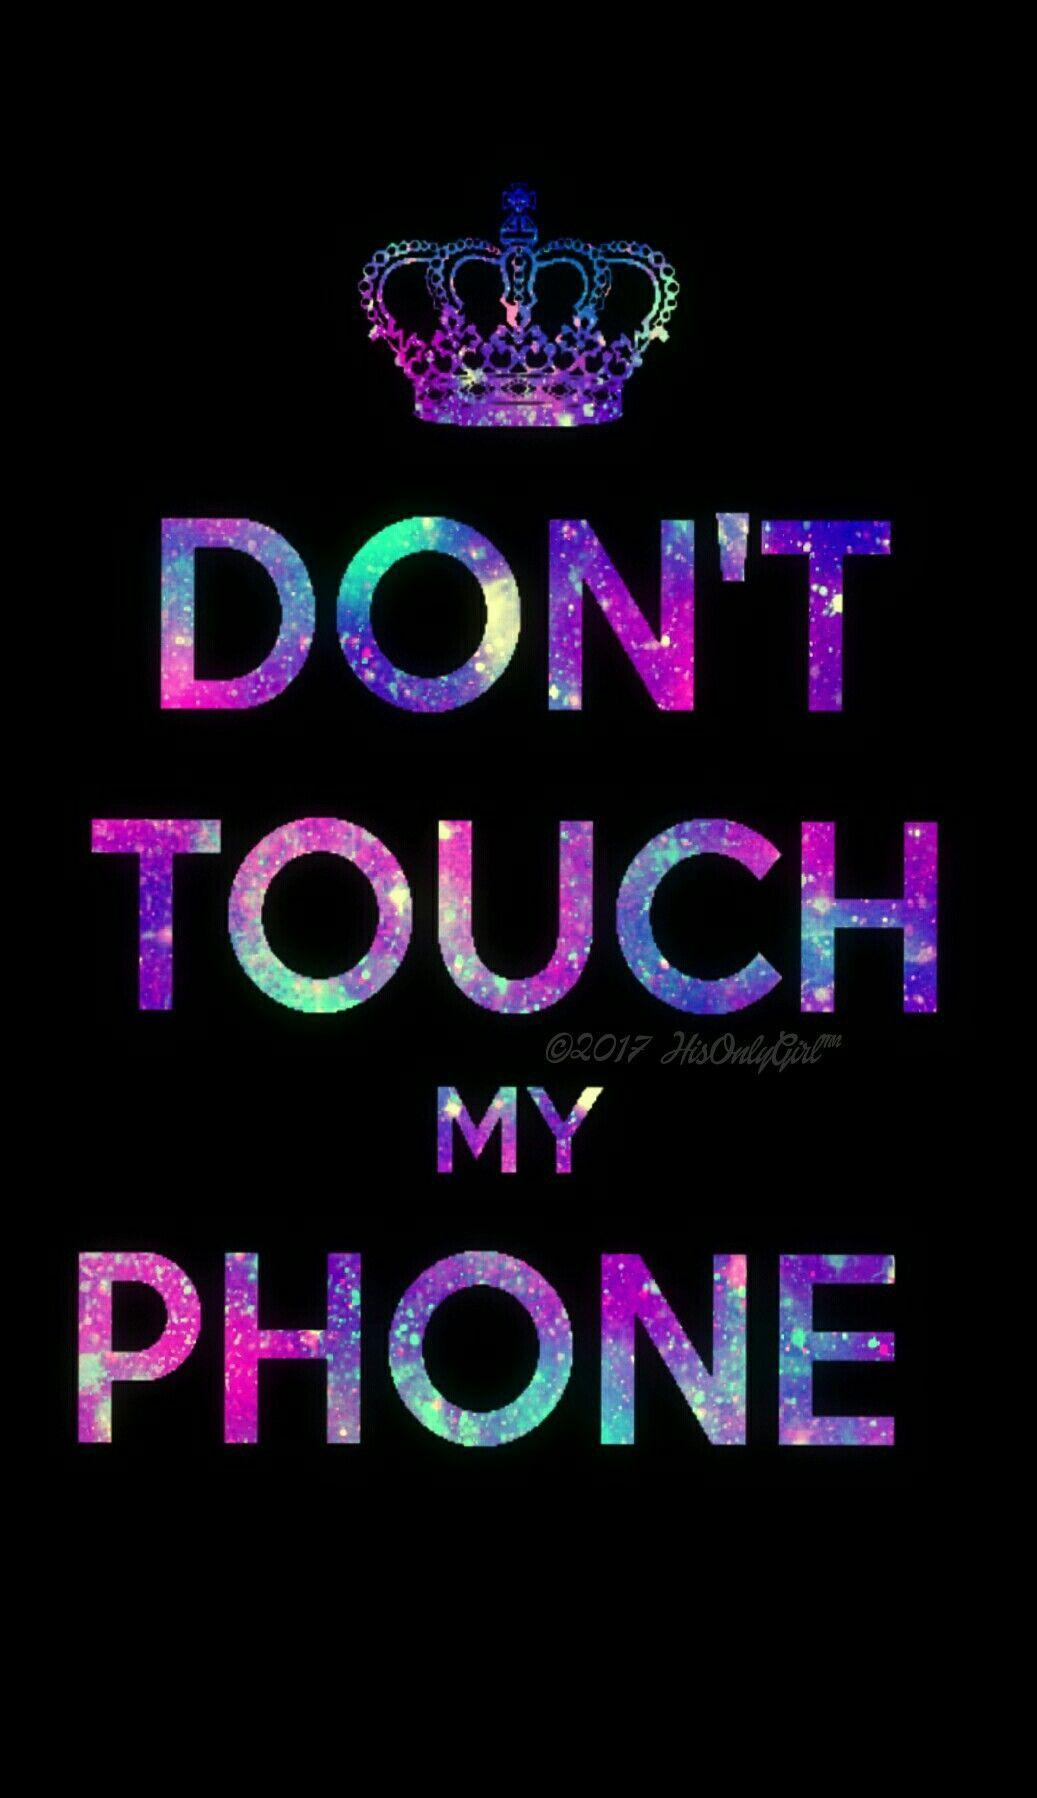 Don T Touch My Phone Pink Wallpapers Wallpaper Cave Don t touch my phone wallpapers wallpaper cave. don t touch my phone pink wallpapers